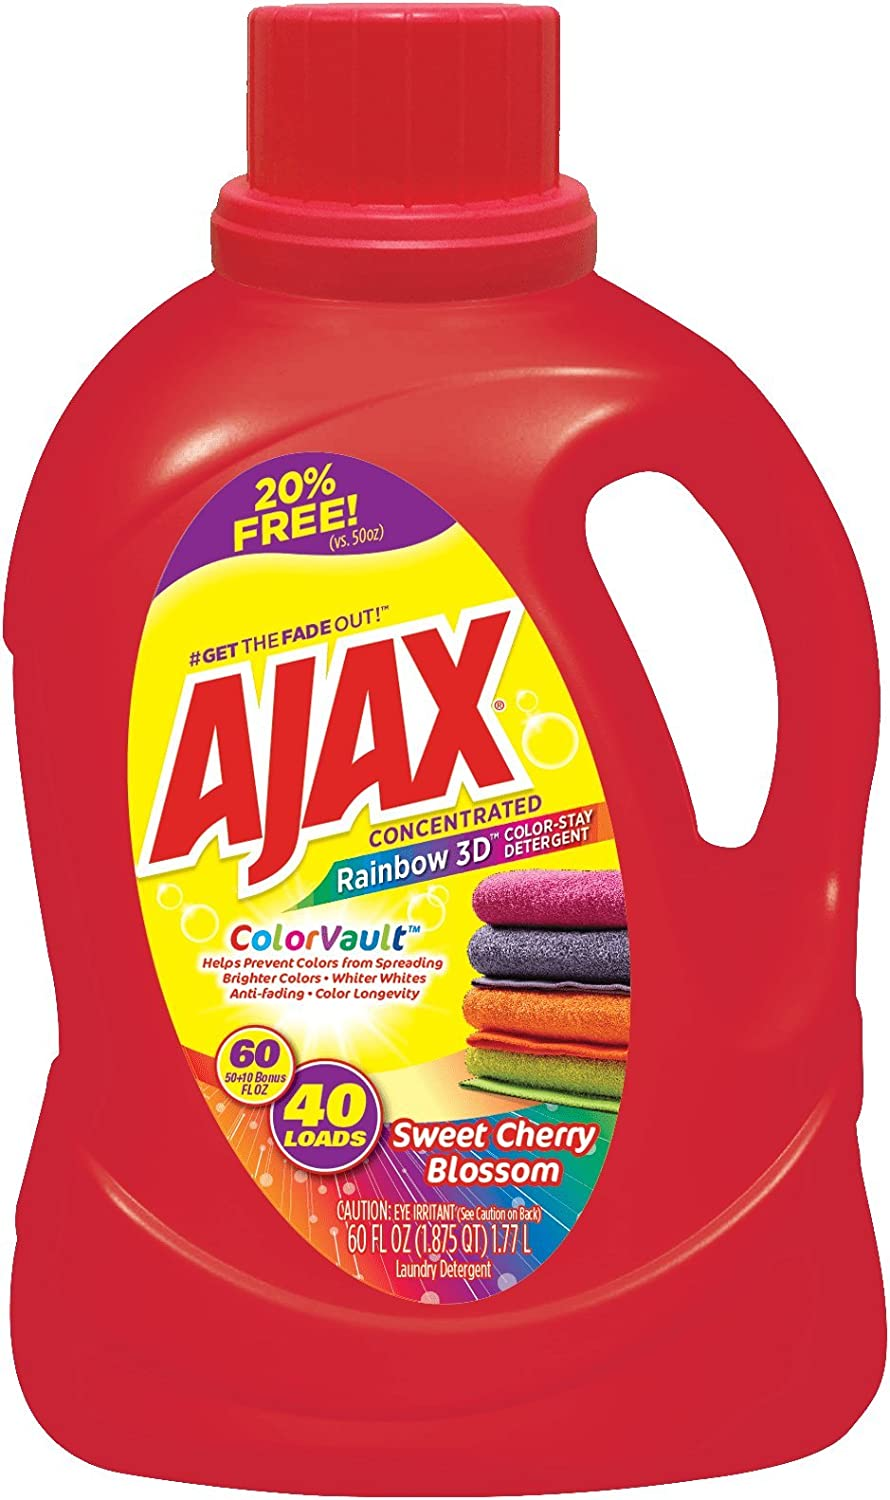 Rainbow 3D Liquid Laundry Detergent with Color Vault by Ajax | Works in All Standard & HE Washing Machines | Hot & Cold Water | Concentrated Colorstay Formula | Sweet Cherry Blossom Scent | 60 Oz.